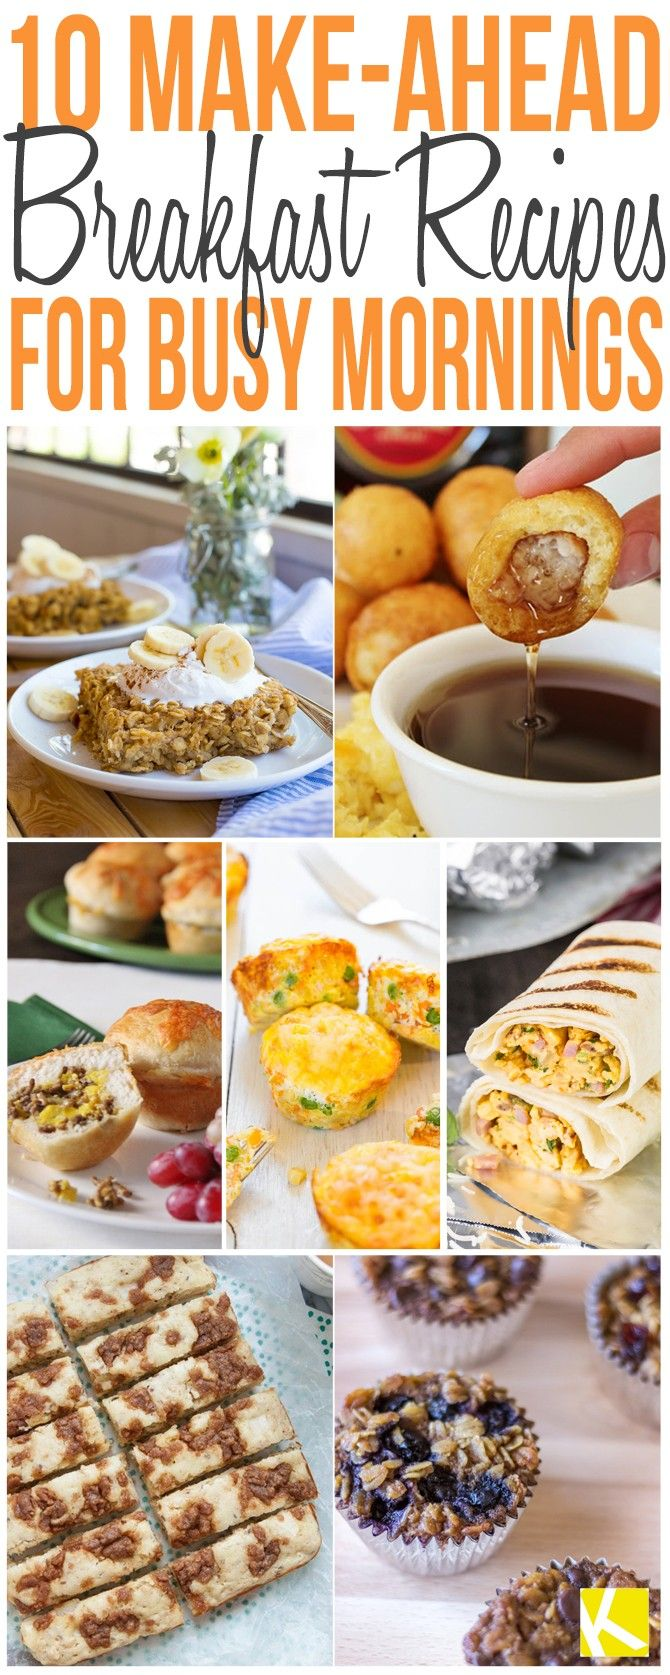 10 Quick and Easy Make-Ahead Breakfast Recipes